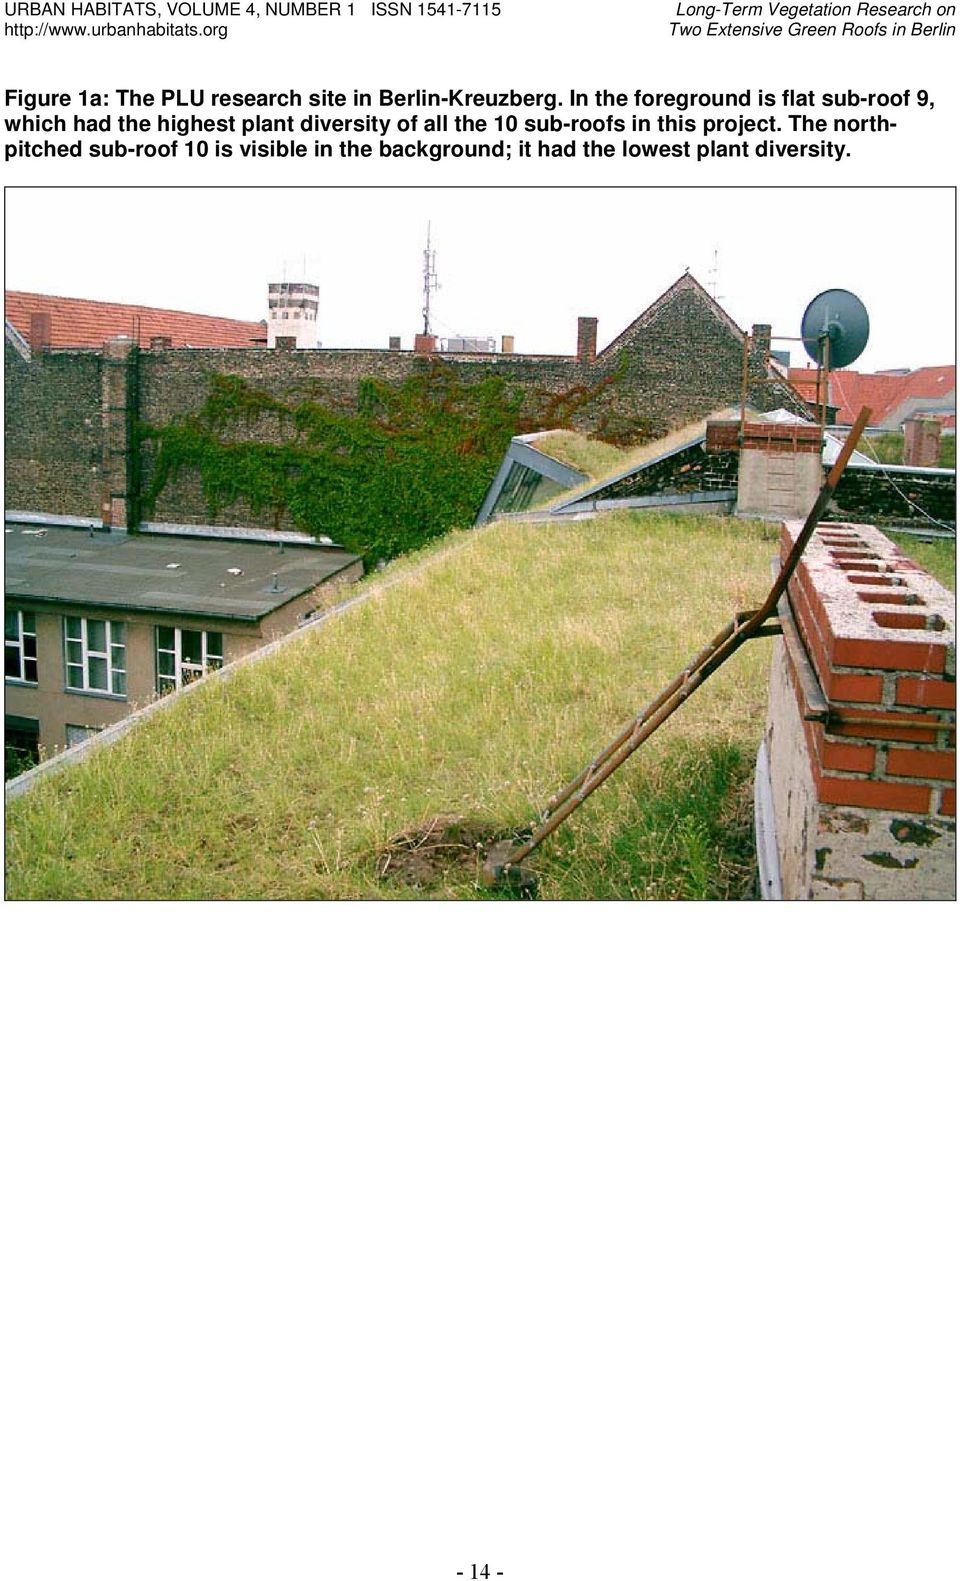 In the foreground is flat sub-roof 9, which had the highest plant diversity of all